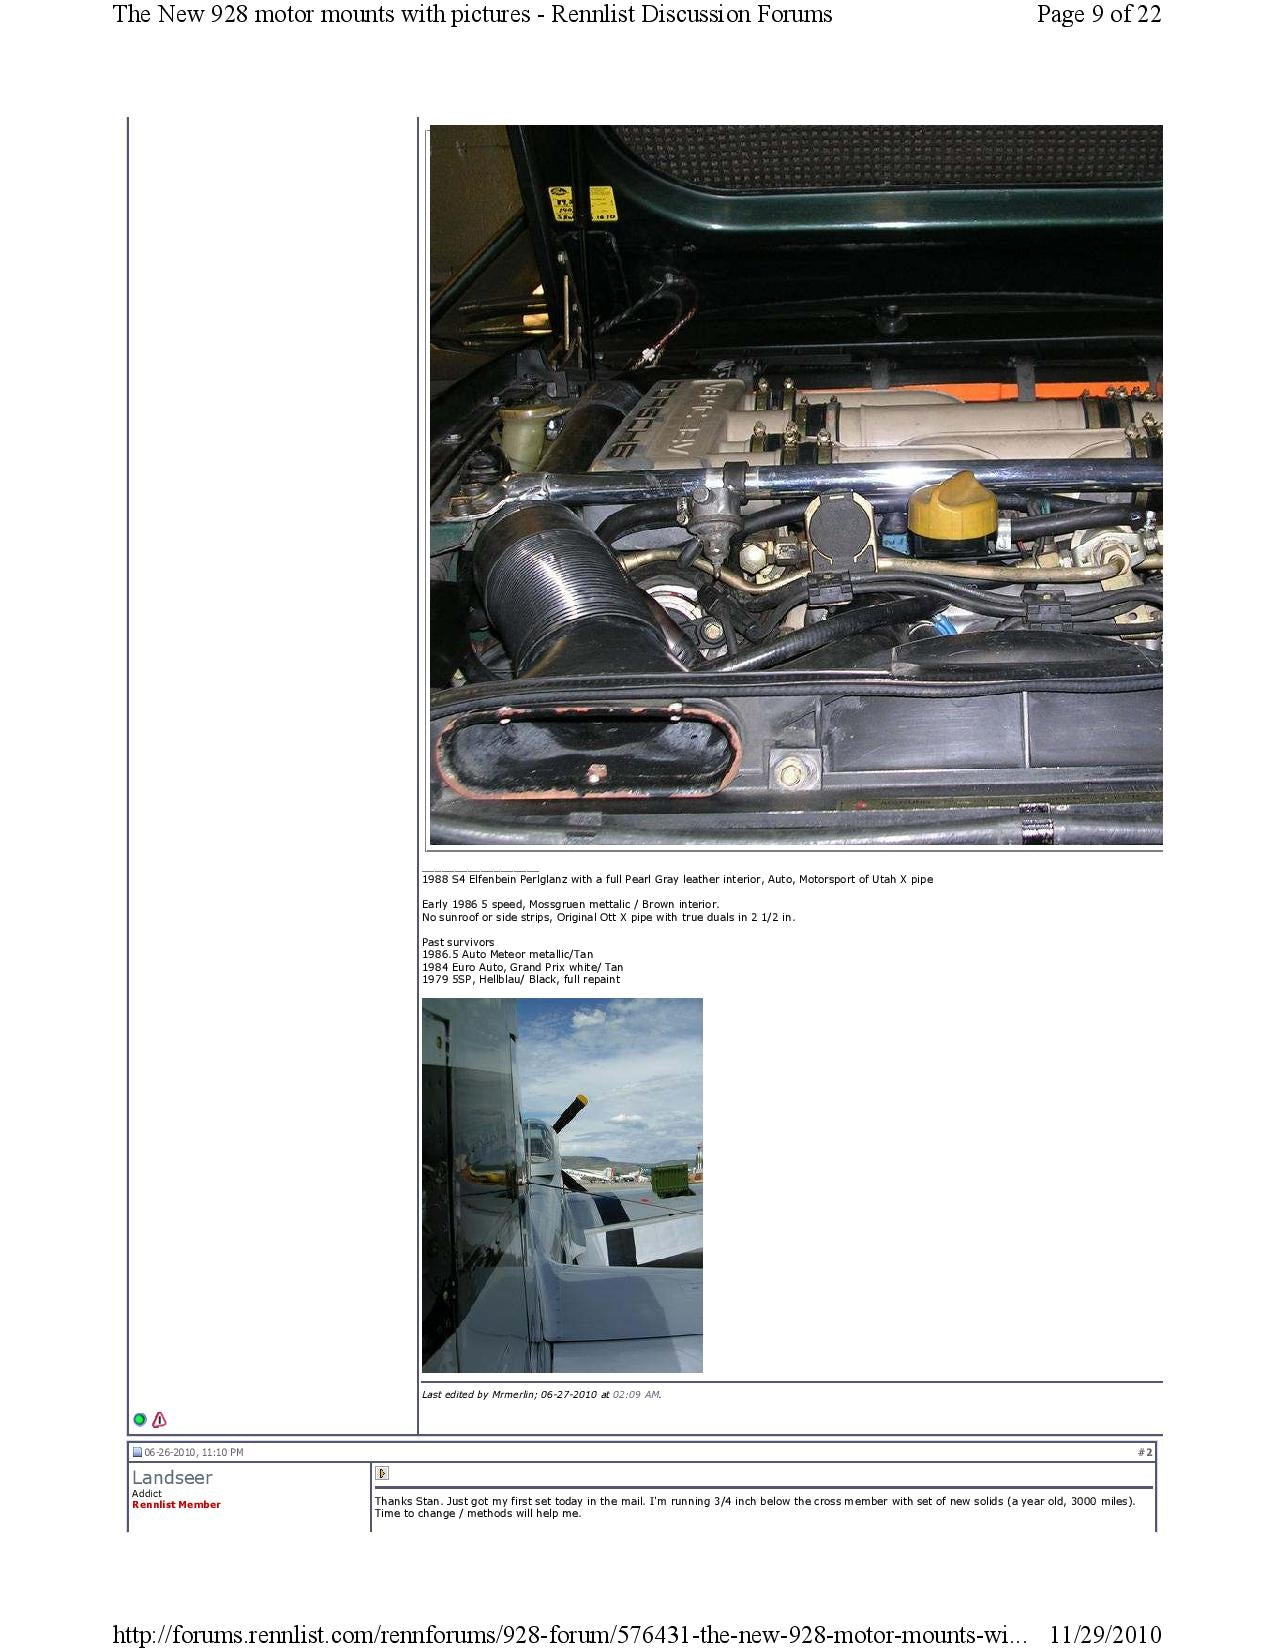 New 928 motor mounts with pictures pg9